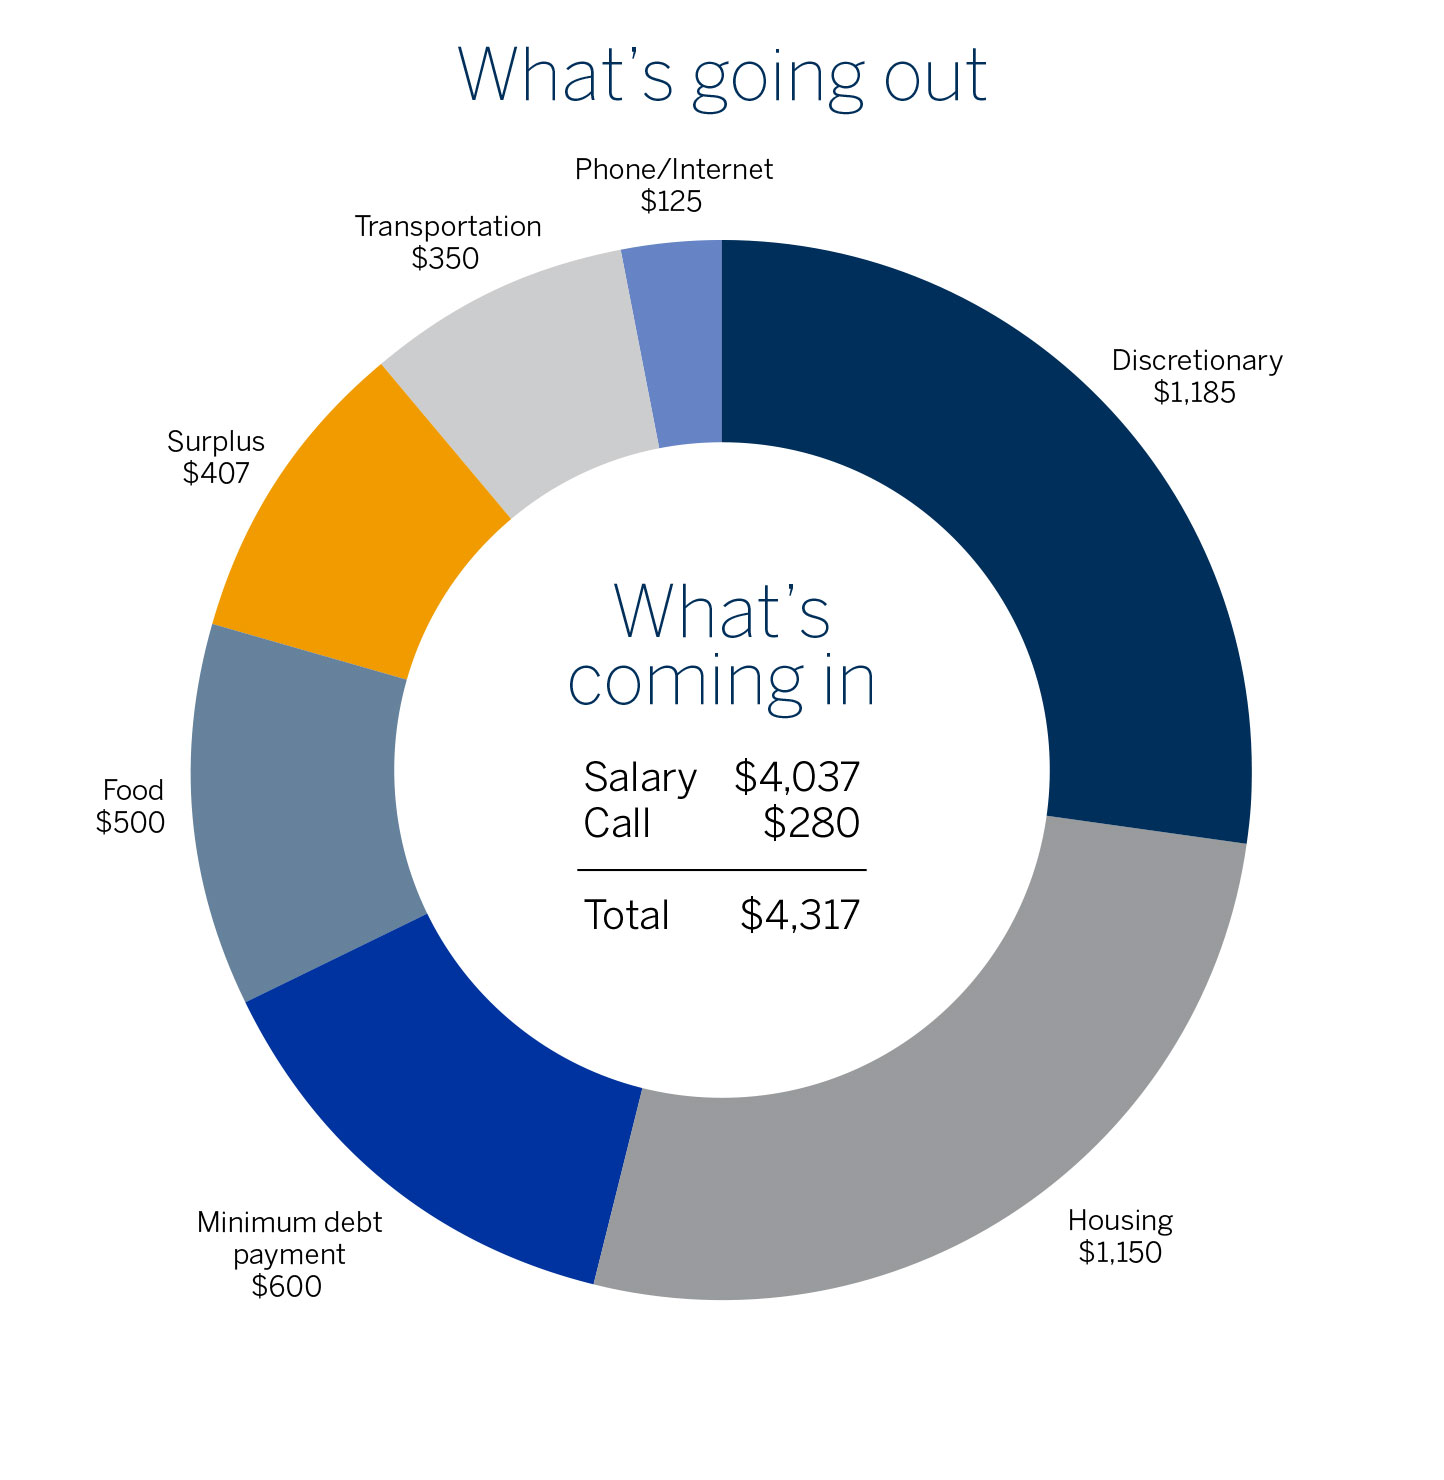 A donut chart showing various expenses (housing, debt payment, food, transportation, phone/internet, discretionary) and what's left over